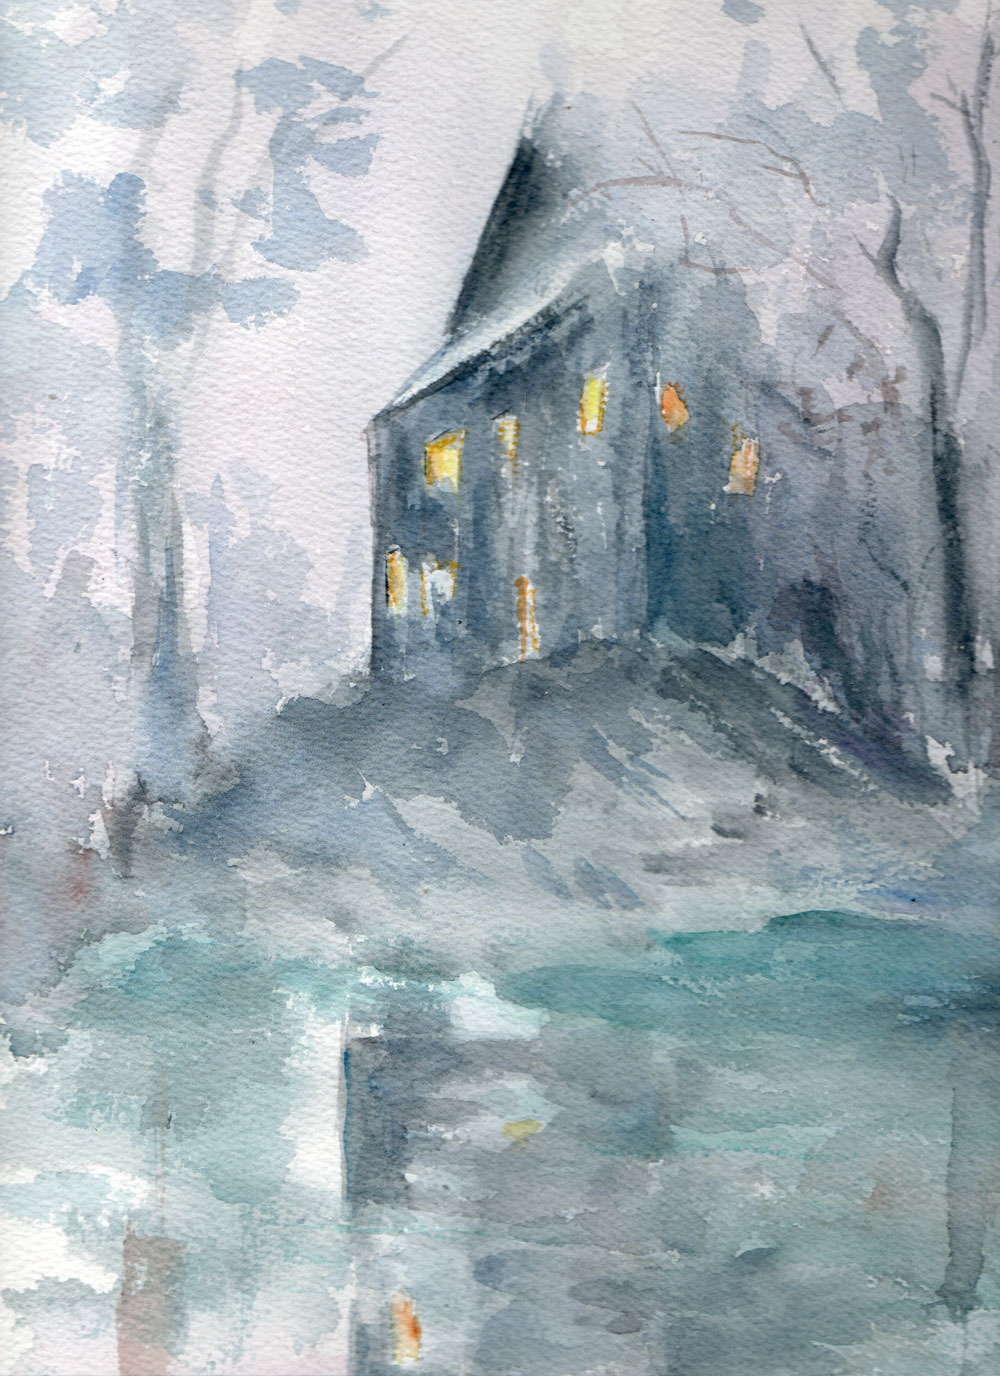 La maison-Usher illustration  mes aquarelles